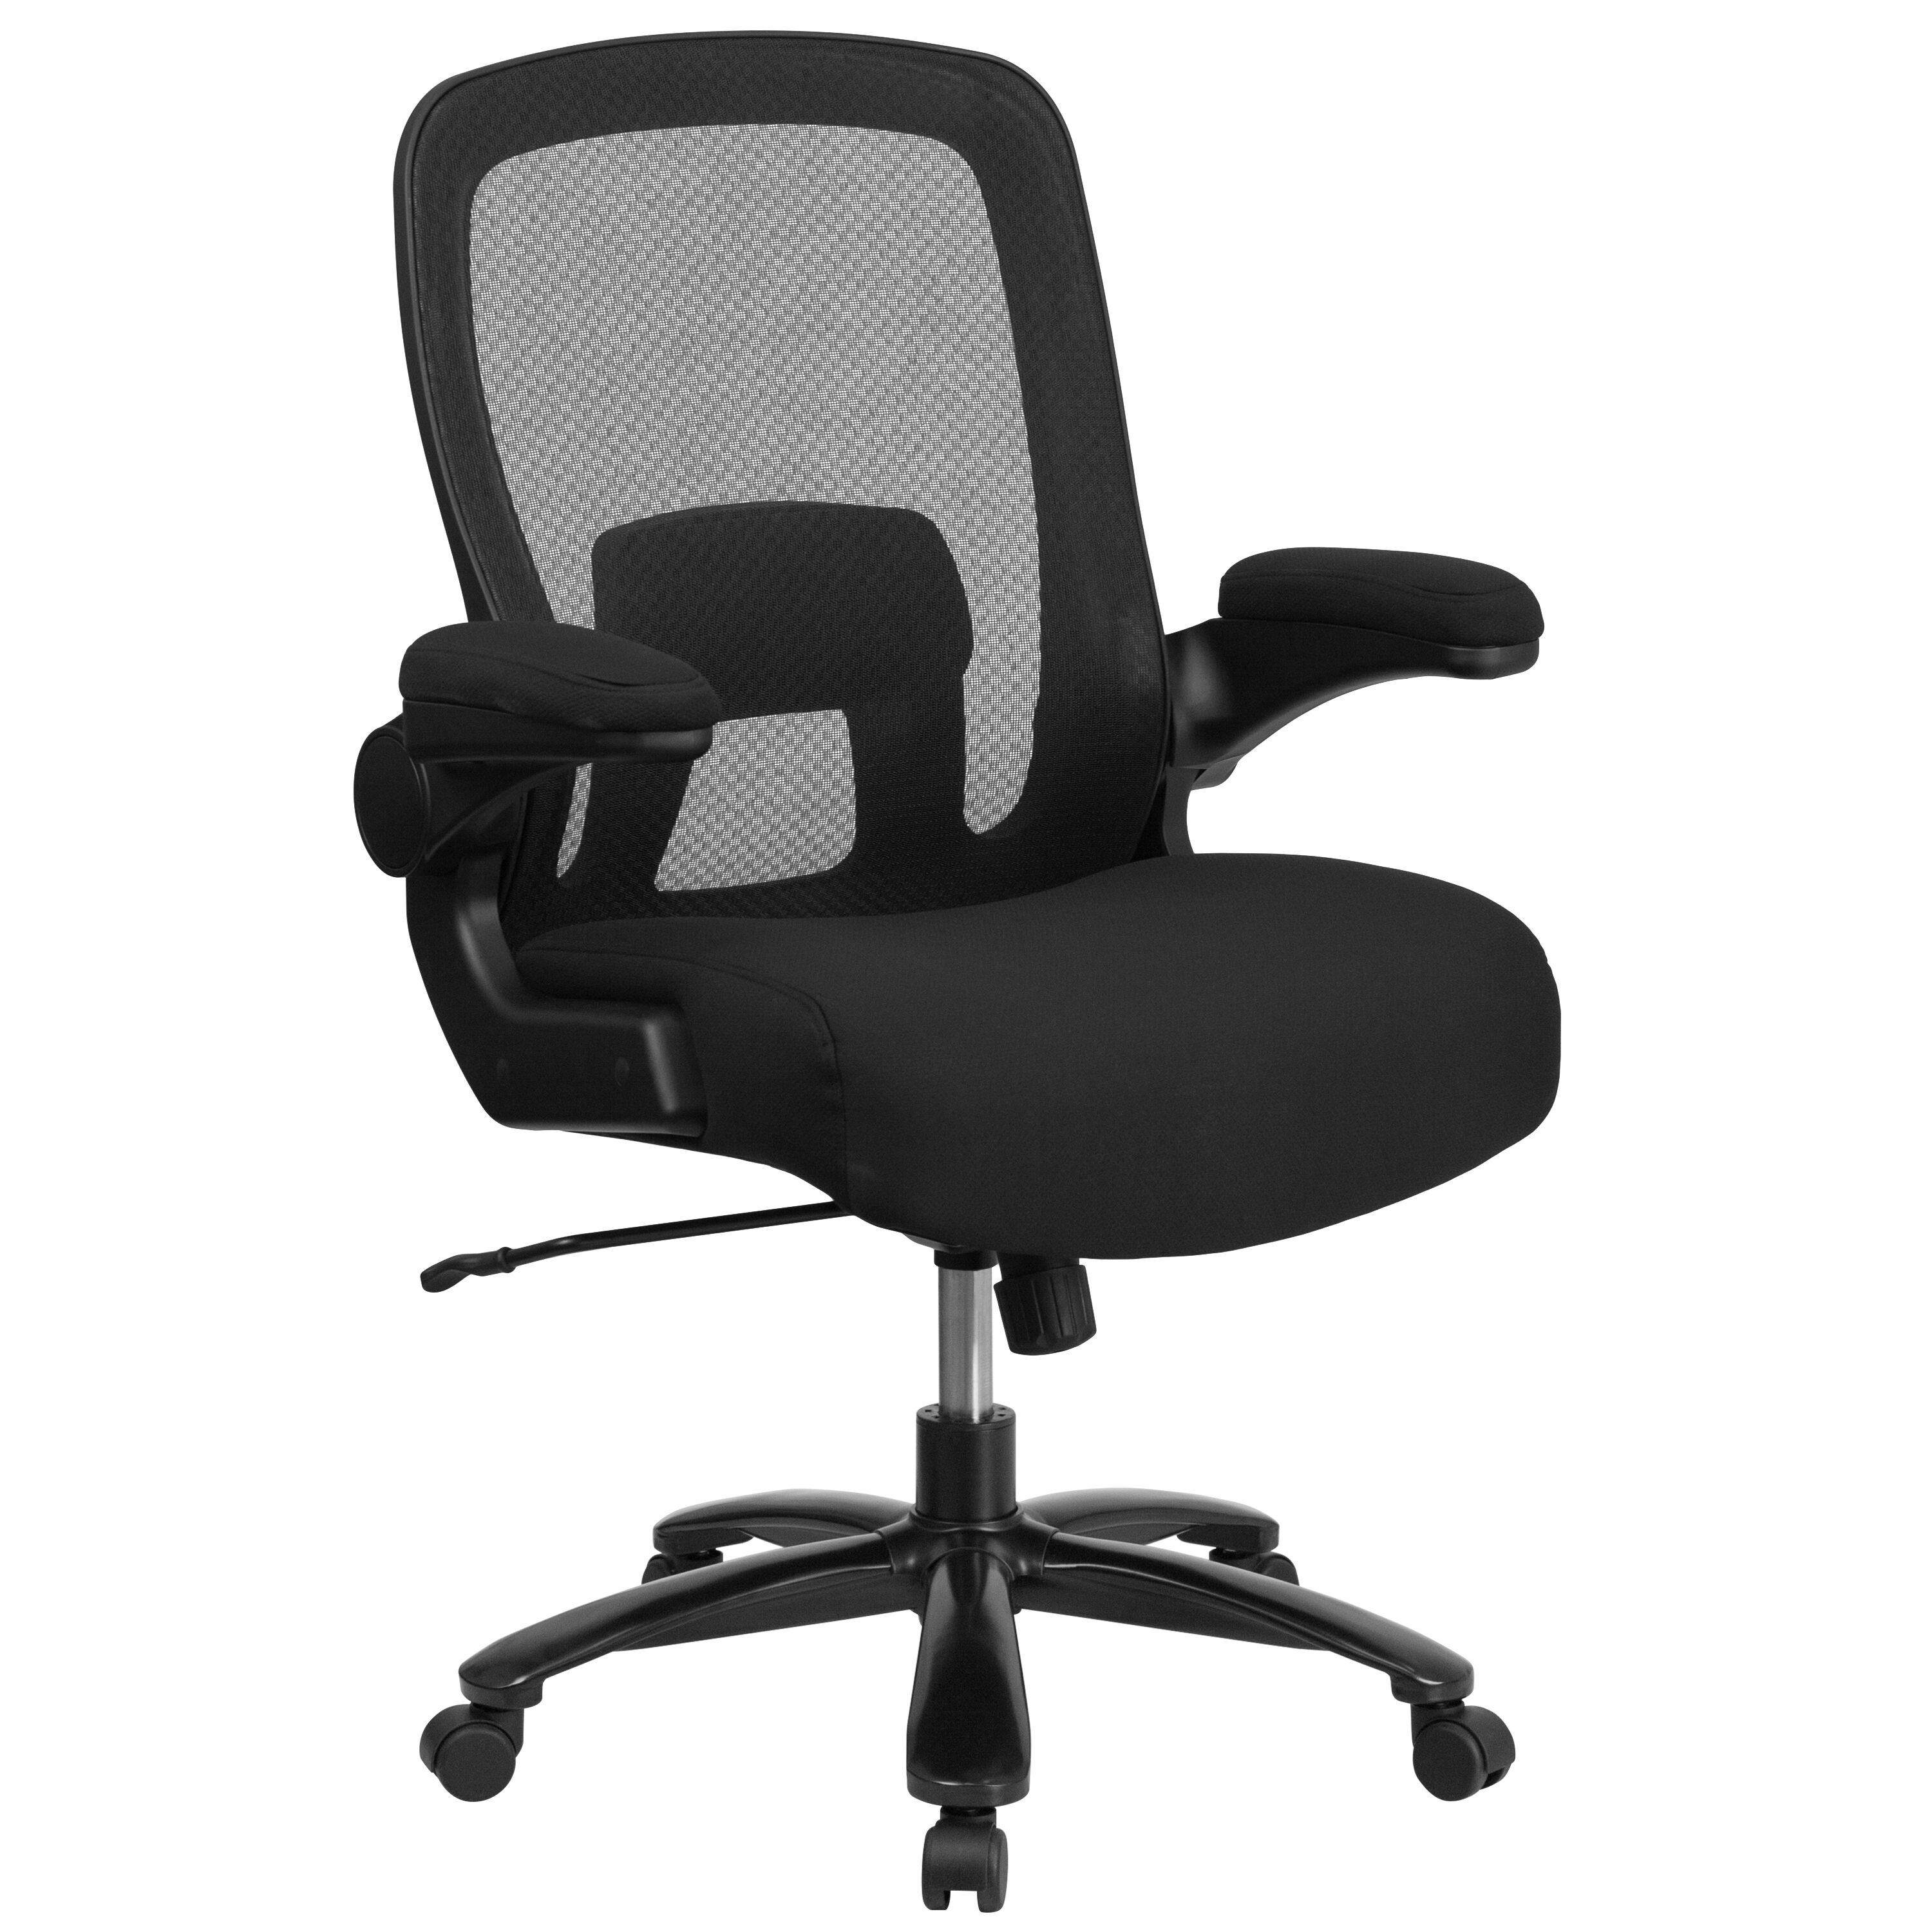 Big Tall Office Chair Black Mesh Executive Swivel Office Chair With Lumbar And Back Support And Wheels